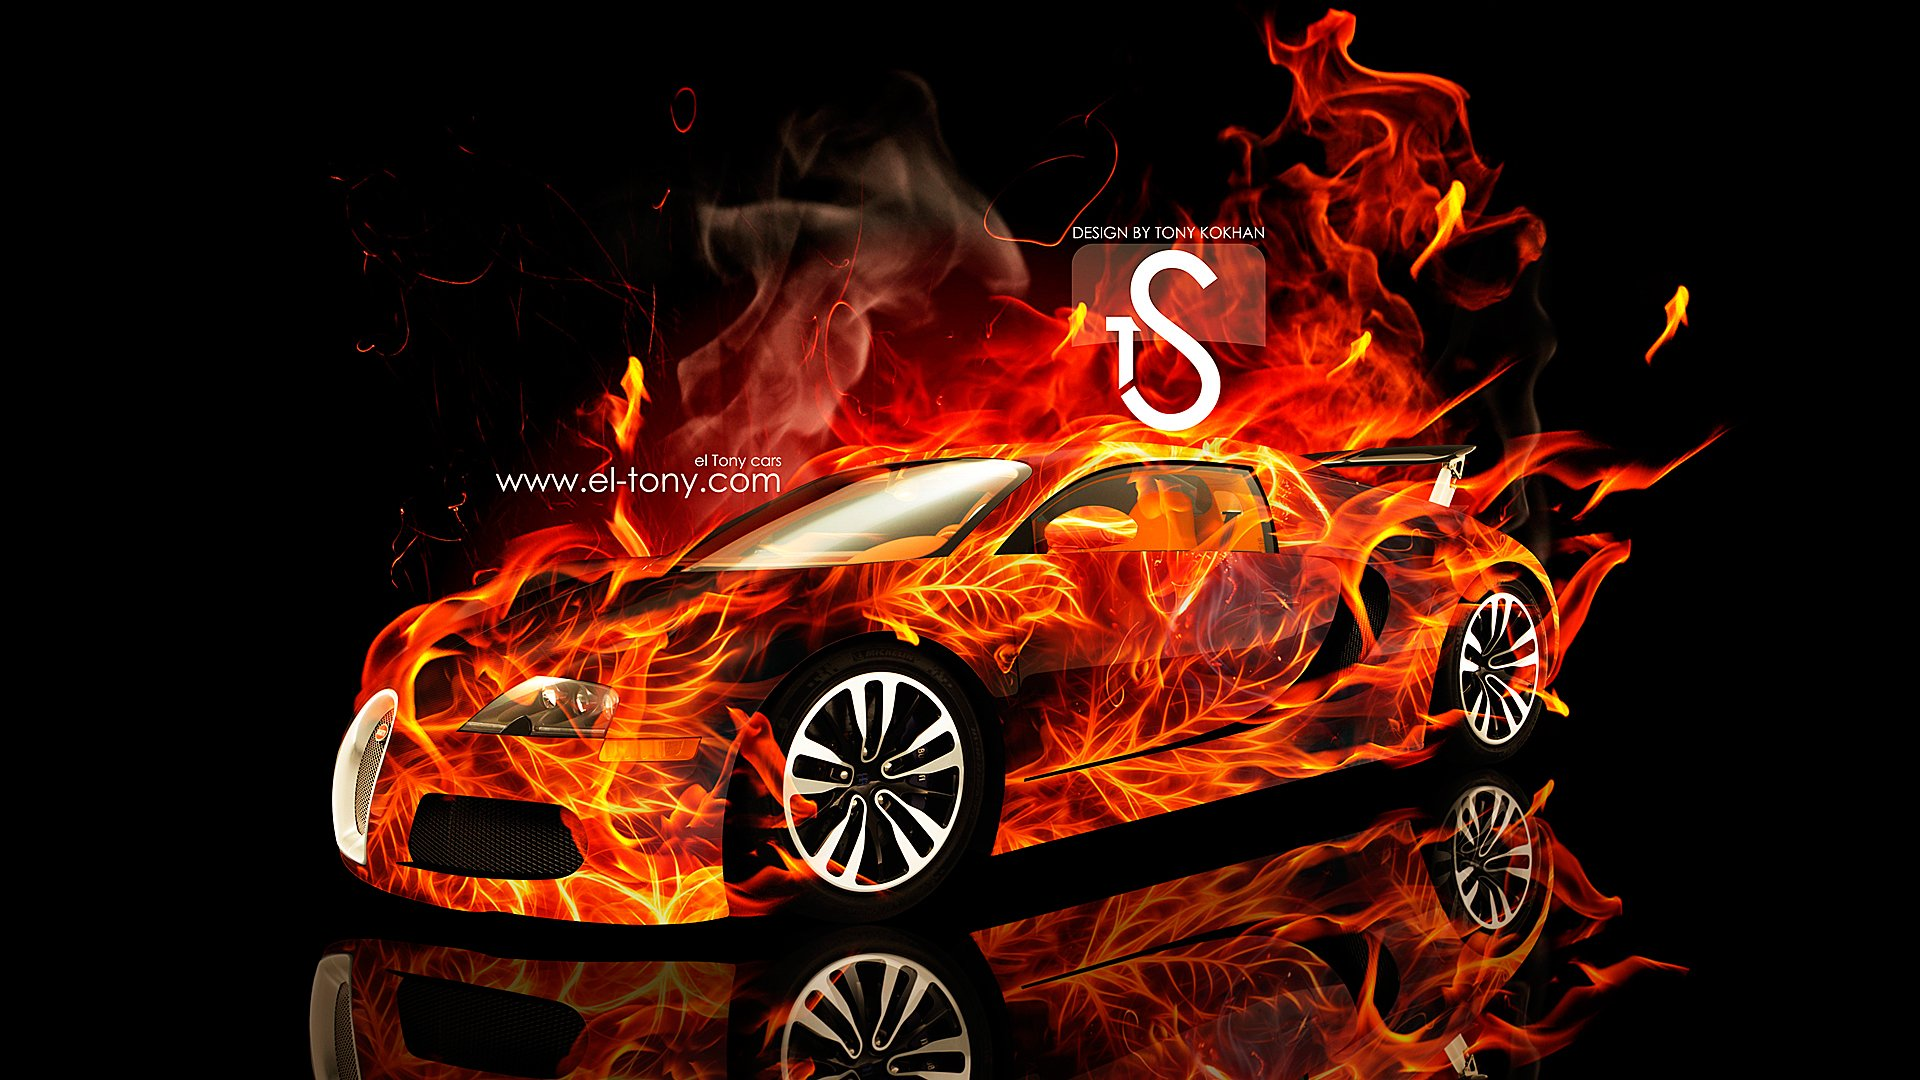 Bugatti Veyron Fire Car 2013 HD Wallpapers 1920x1080 [wwwel tonycom] 1920x1080